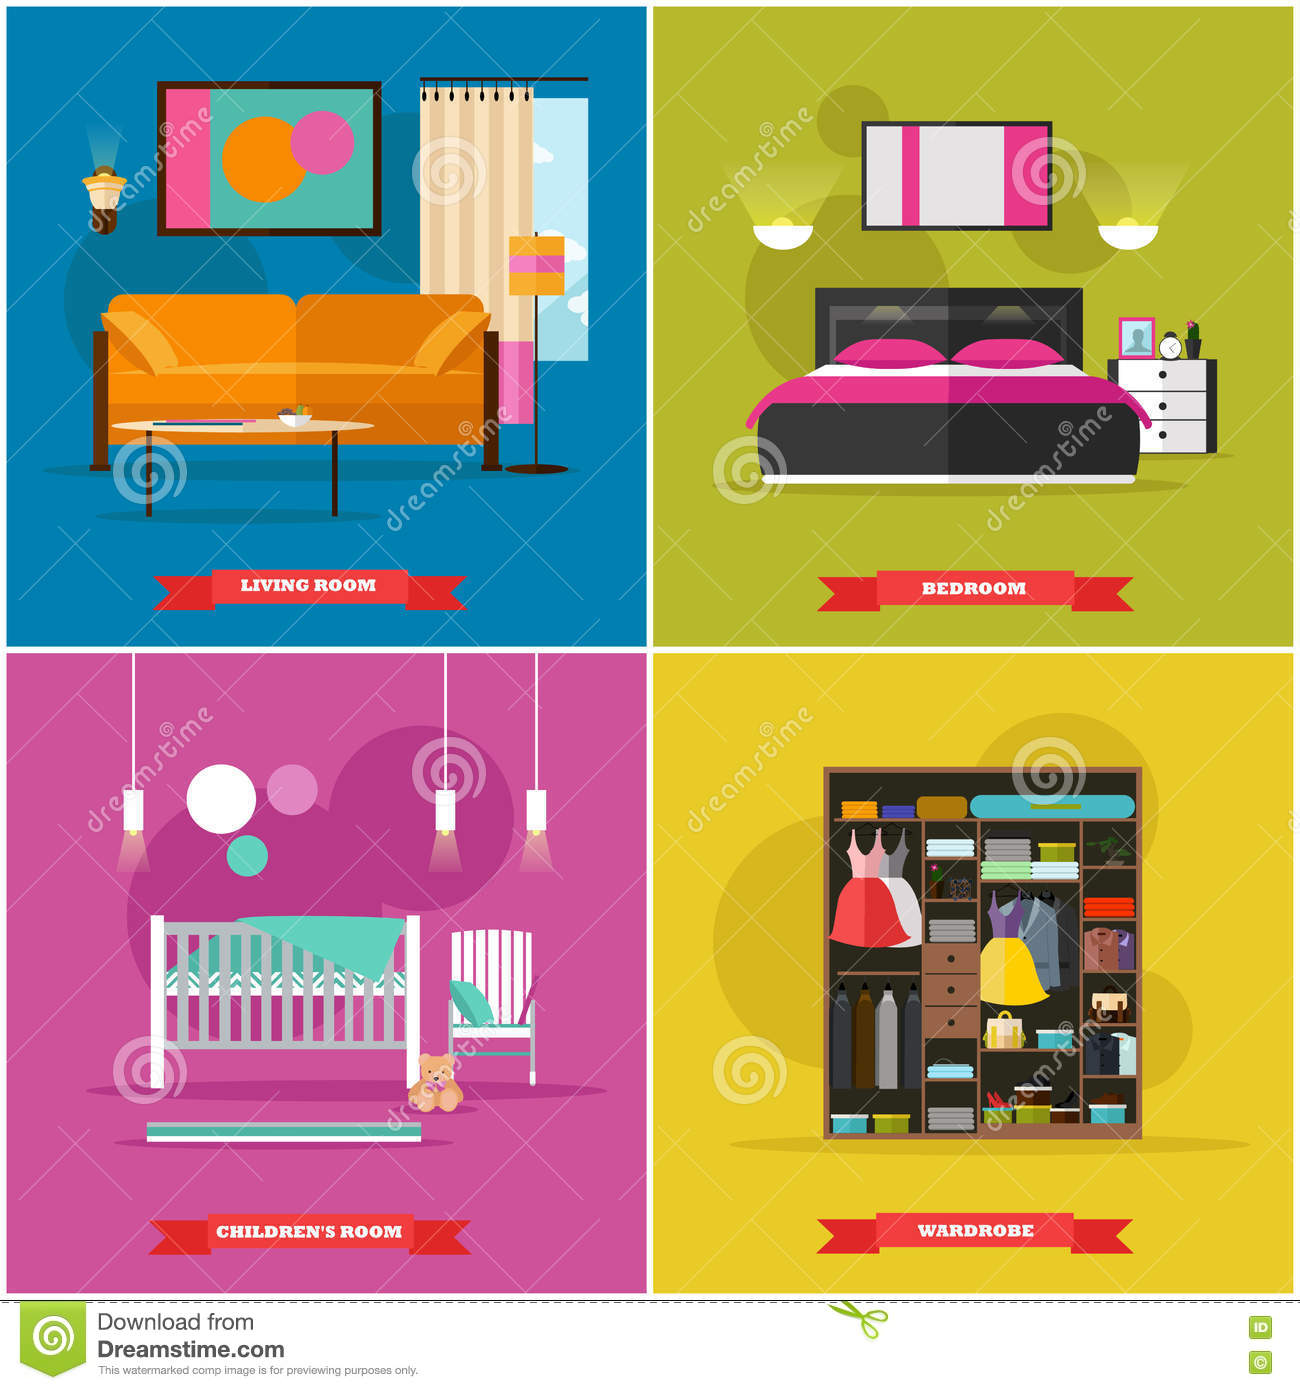 Sofa Icon In Flat And Cartoon Style Vector Illustration 86000088